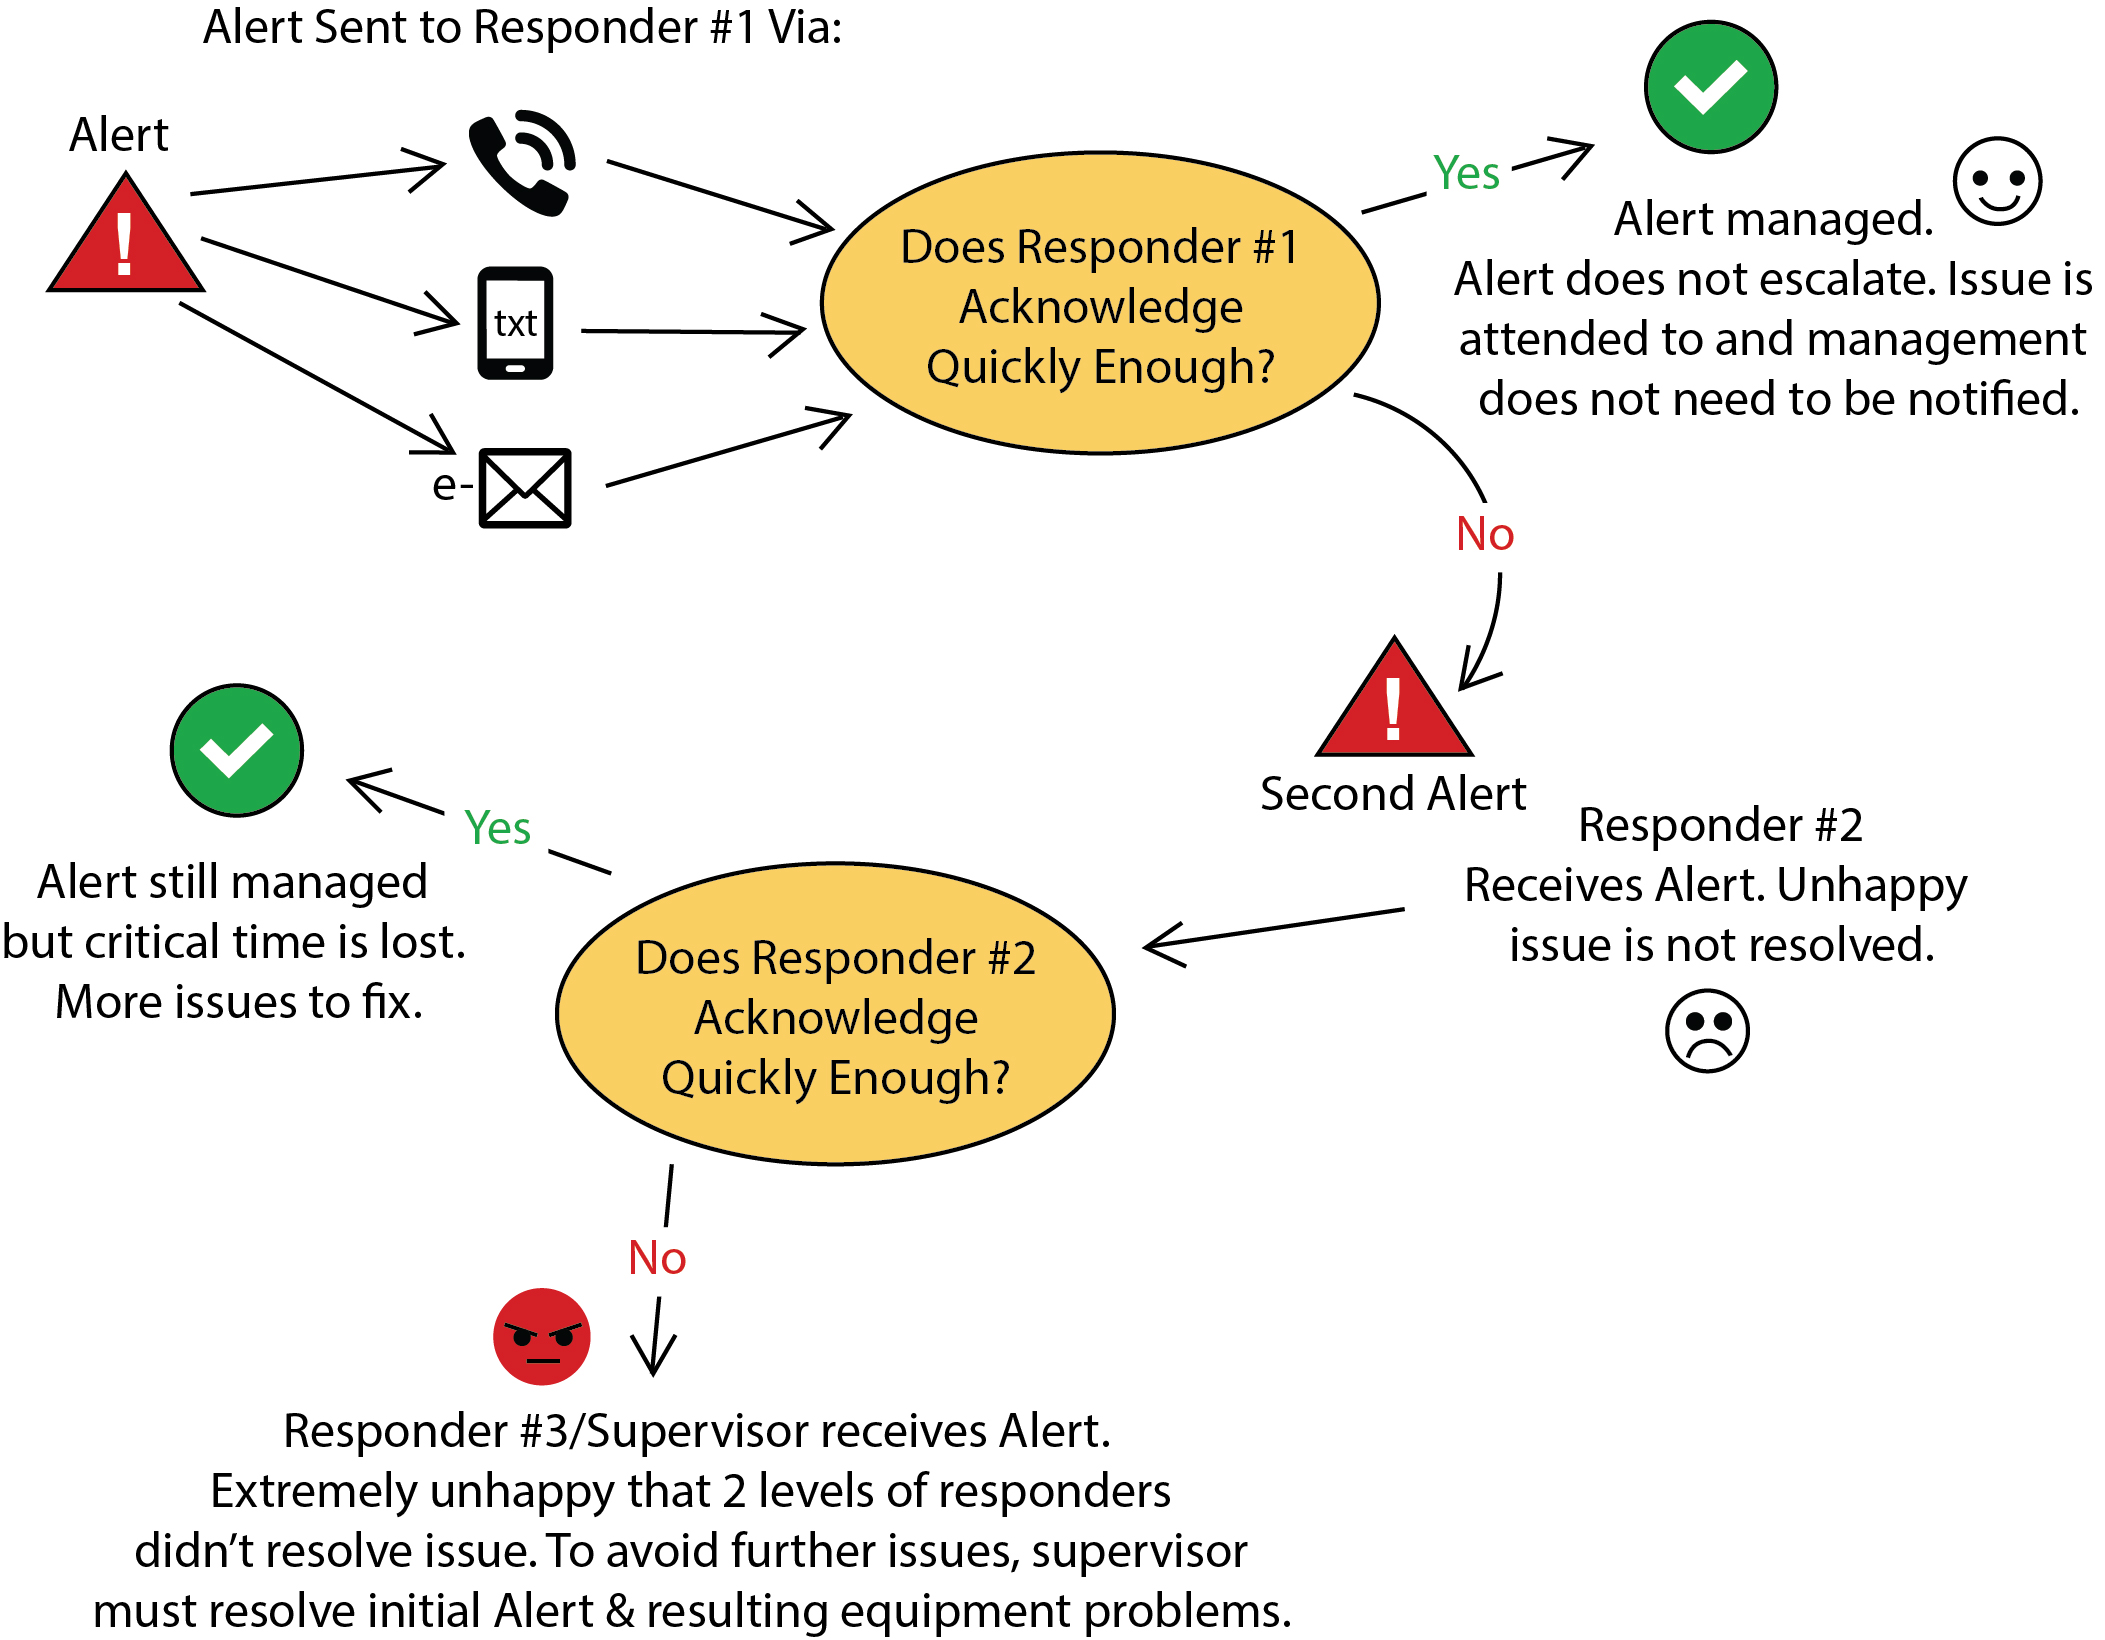 A decision flow chart showing the importance of responders acknowledging alerts as quickly as possible